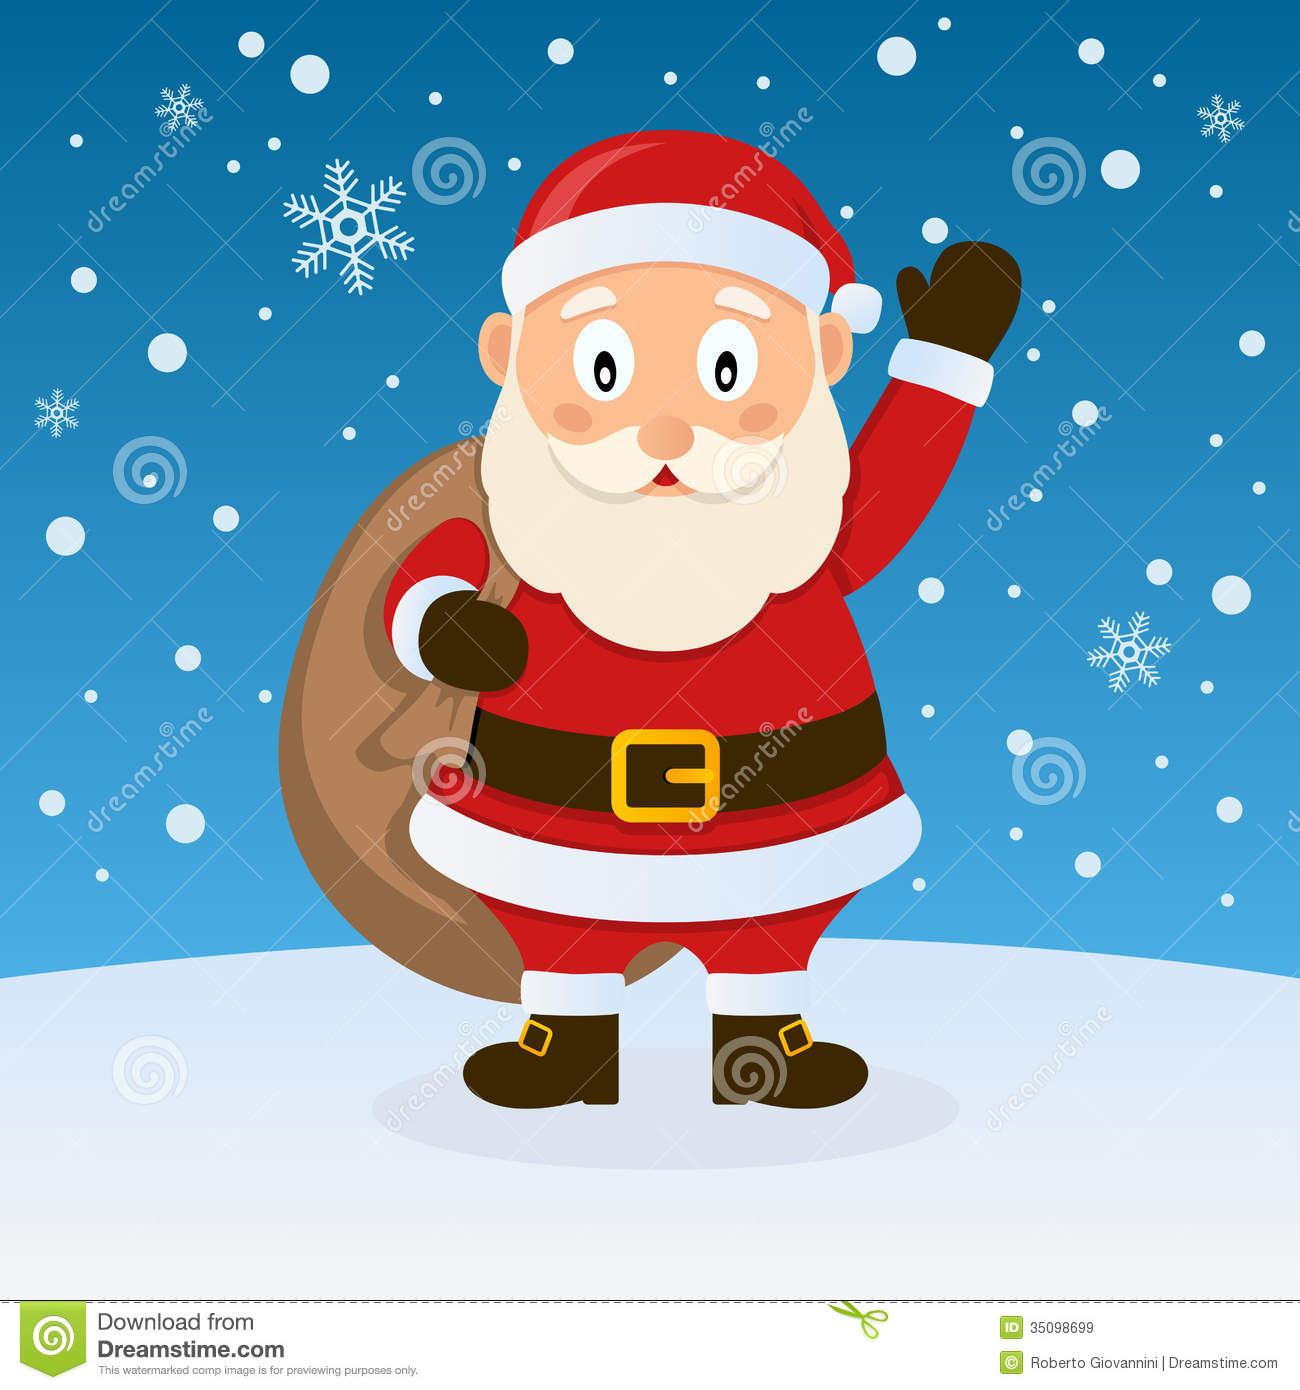 Santa Claus Christmas On The Snow Royalty Free Stock